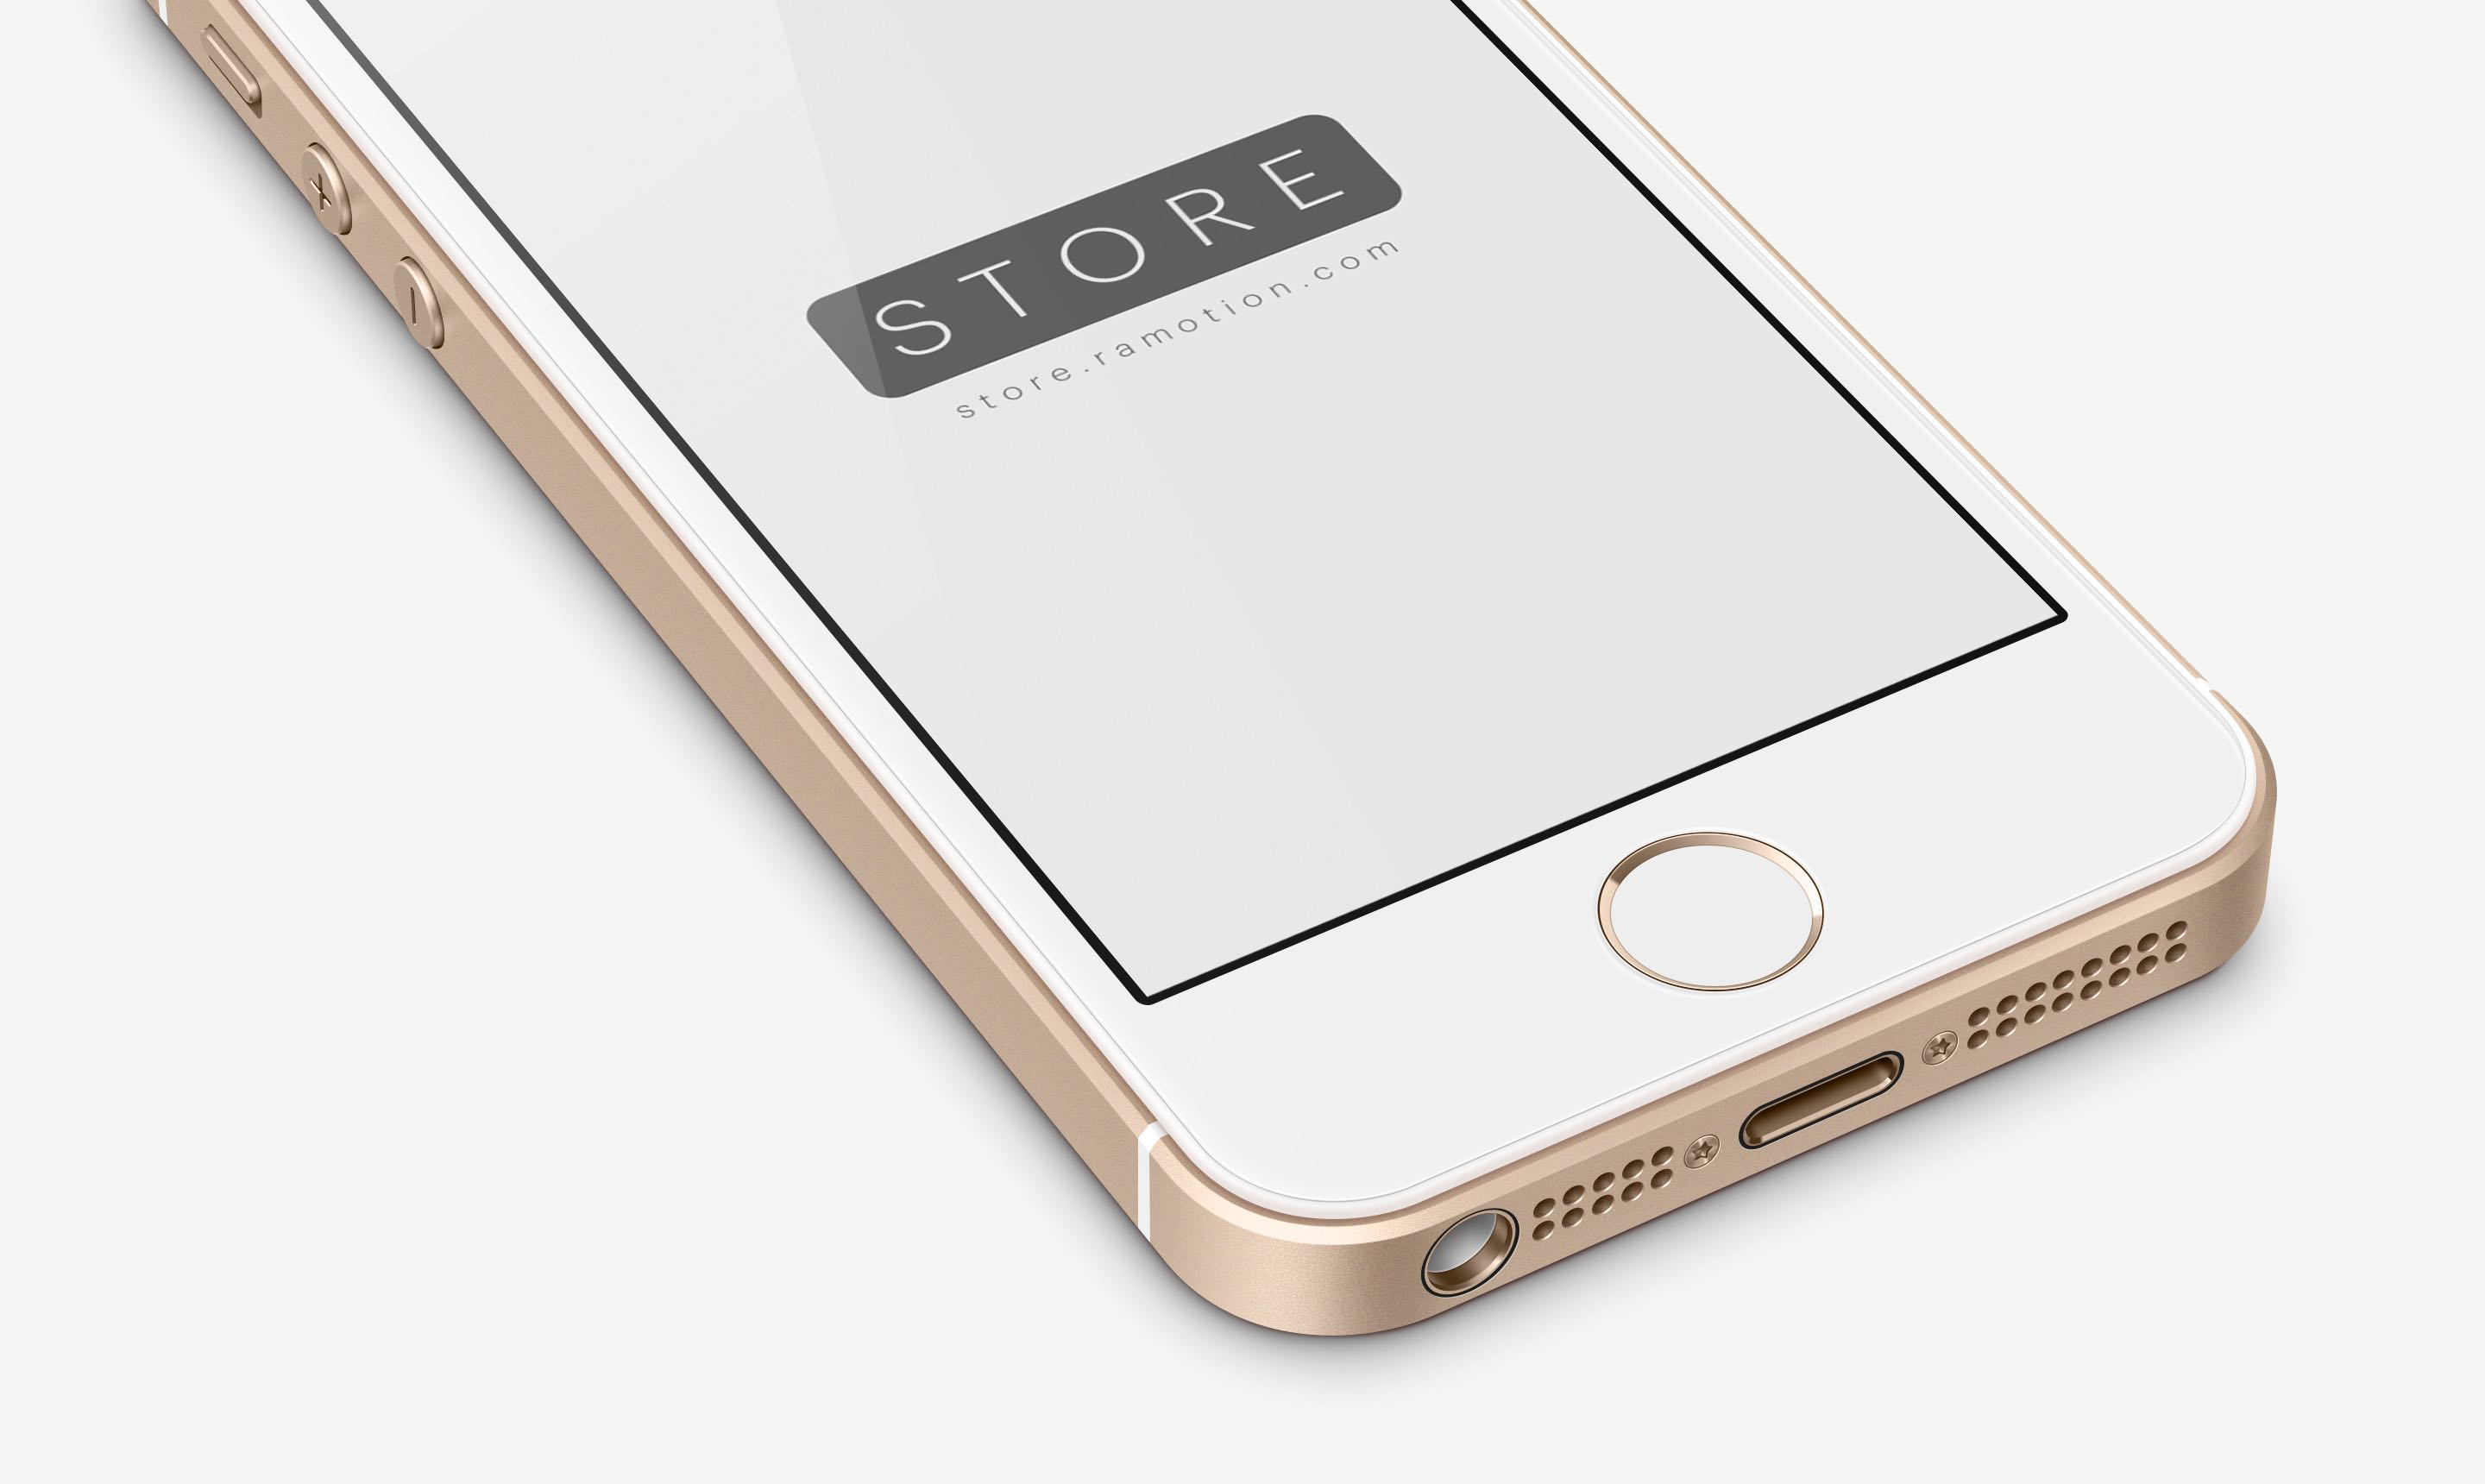 perspective gold iphone se mockup